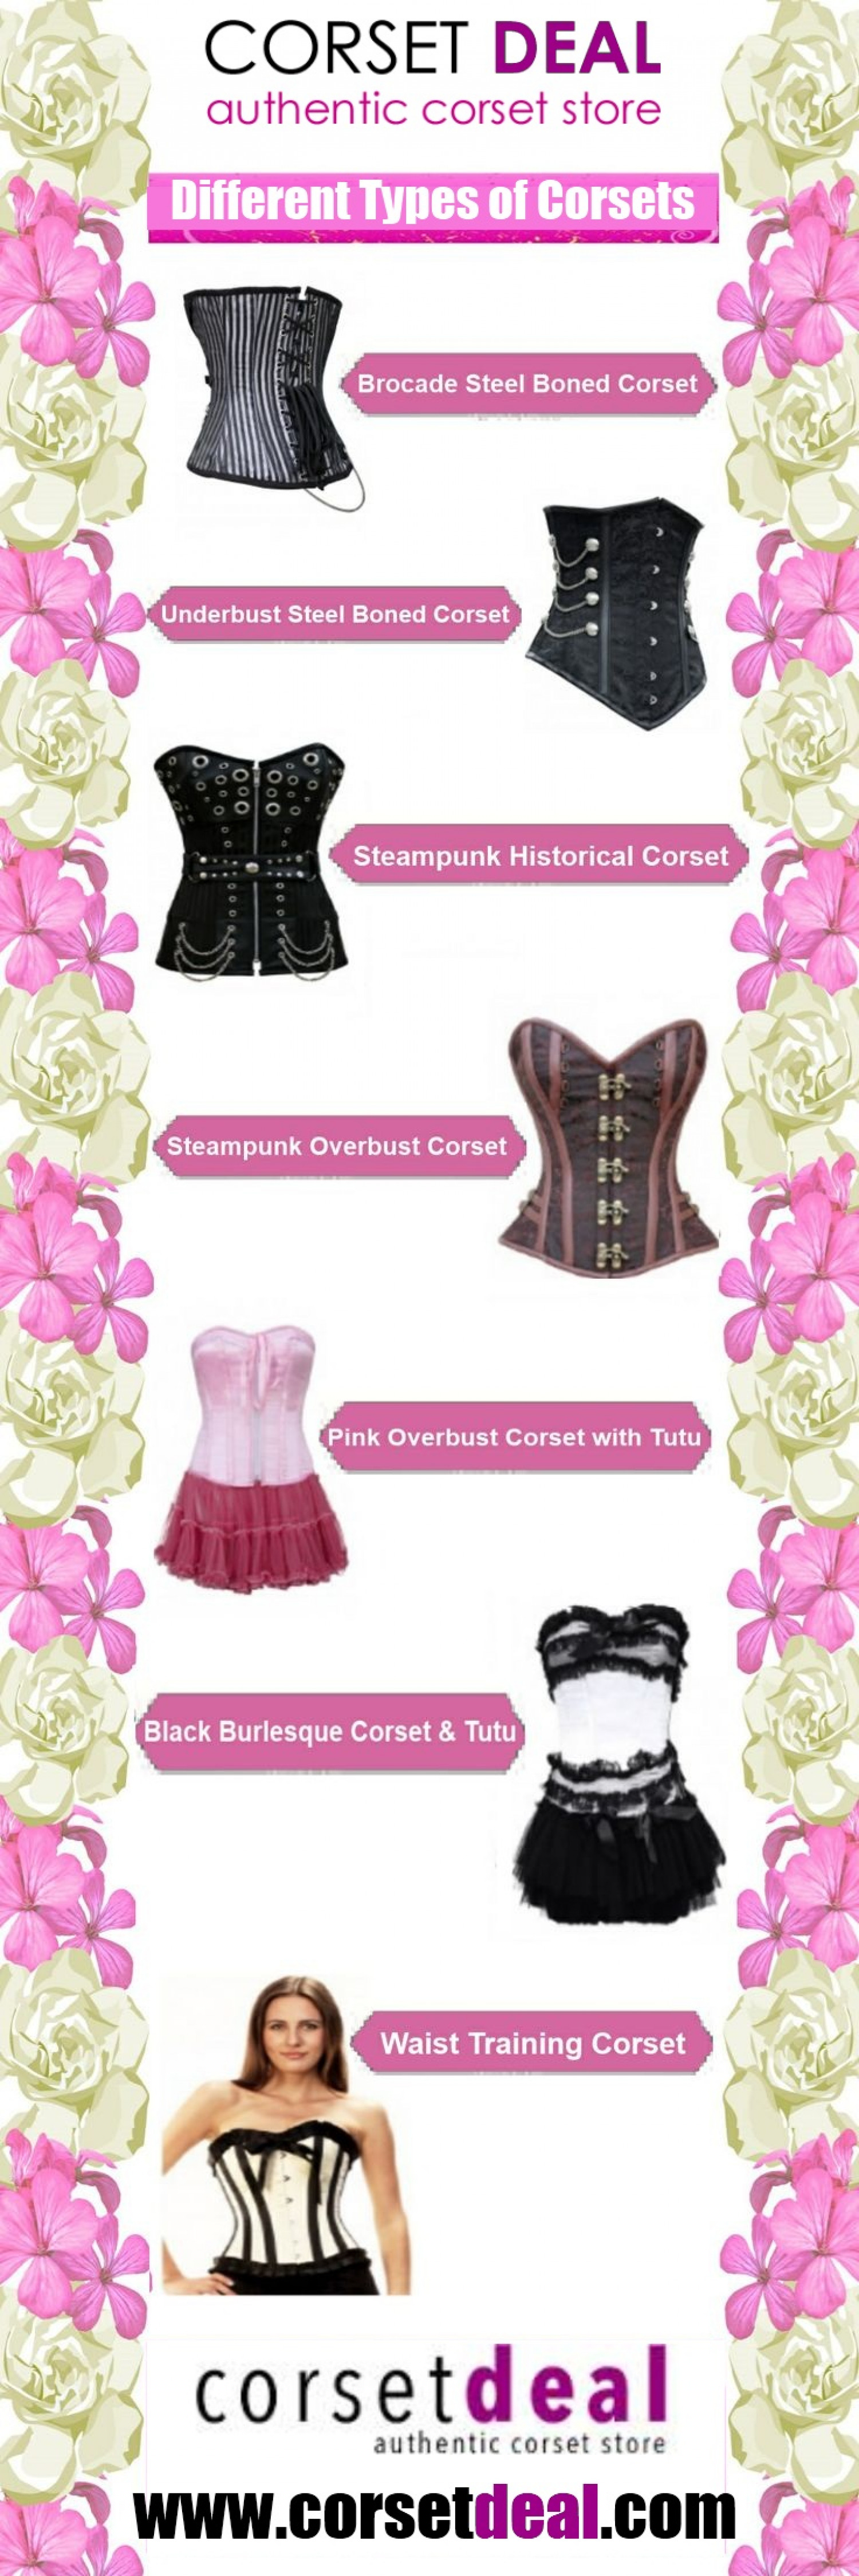 5343991c25 Different Types of Corsets Infographic